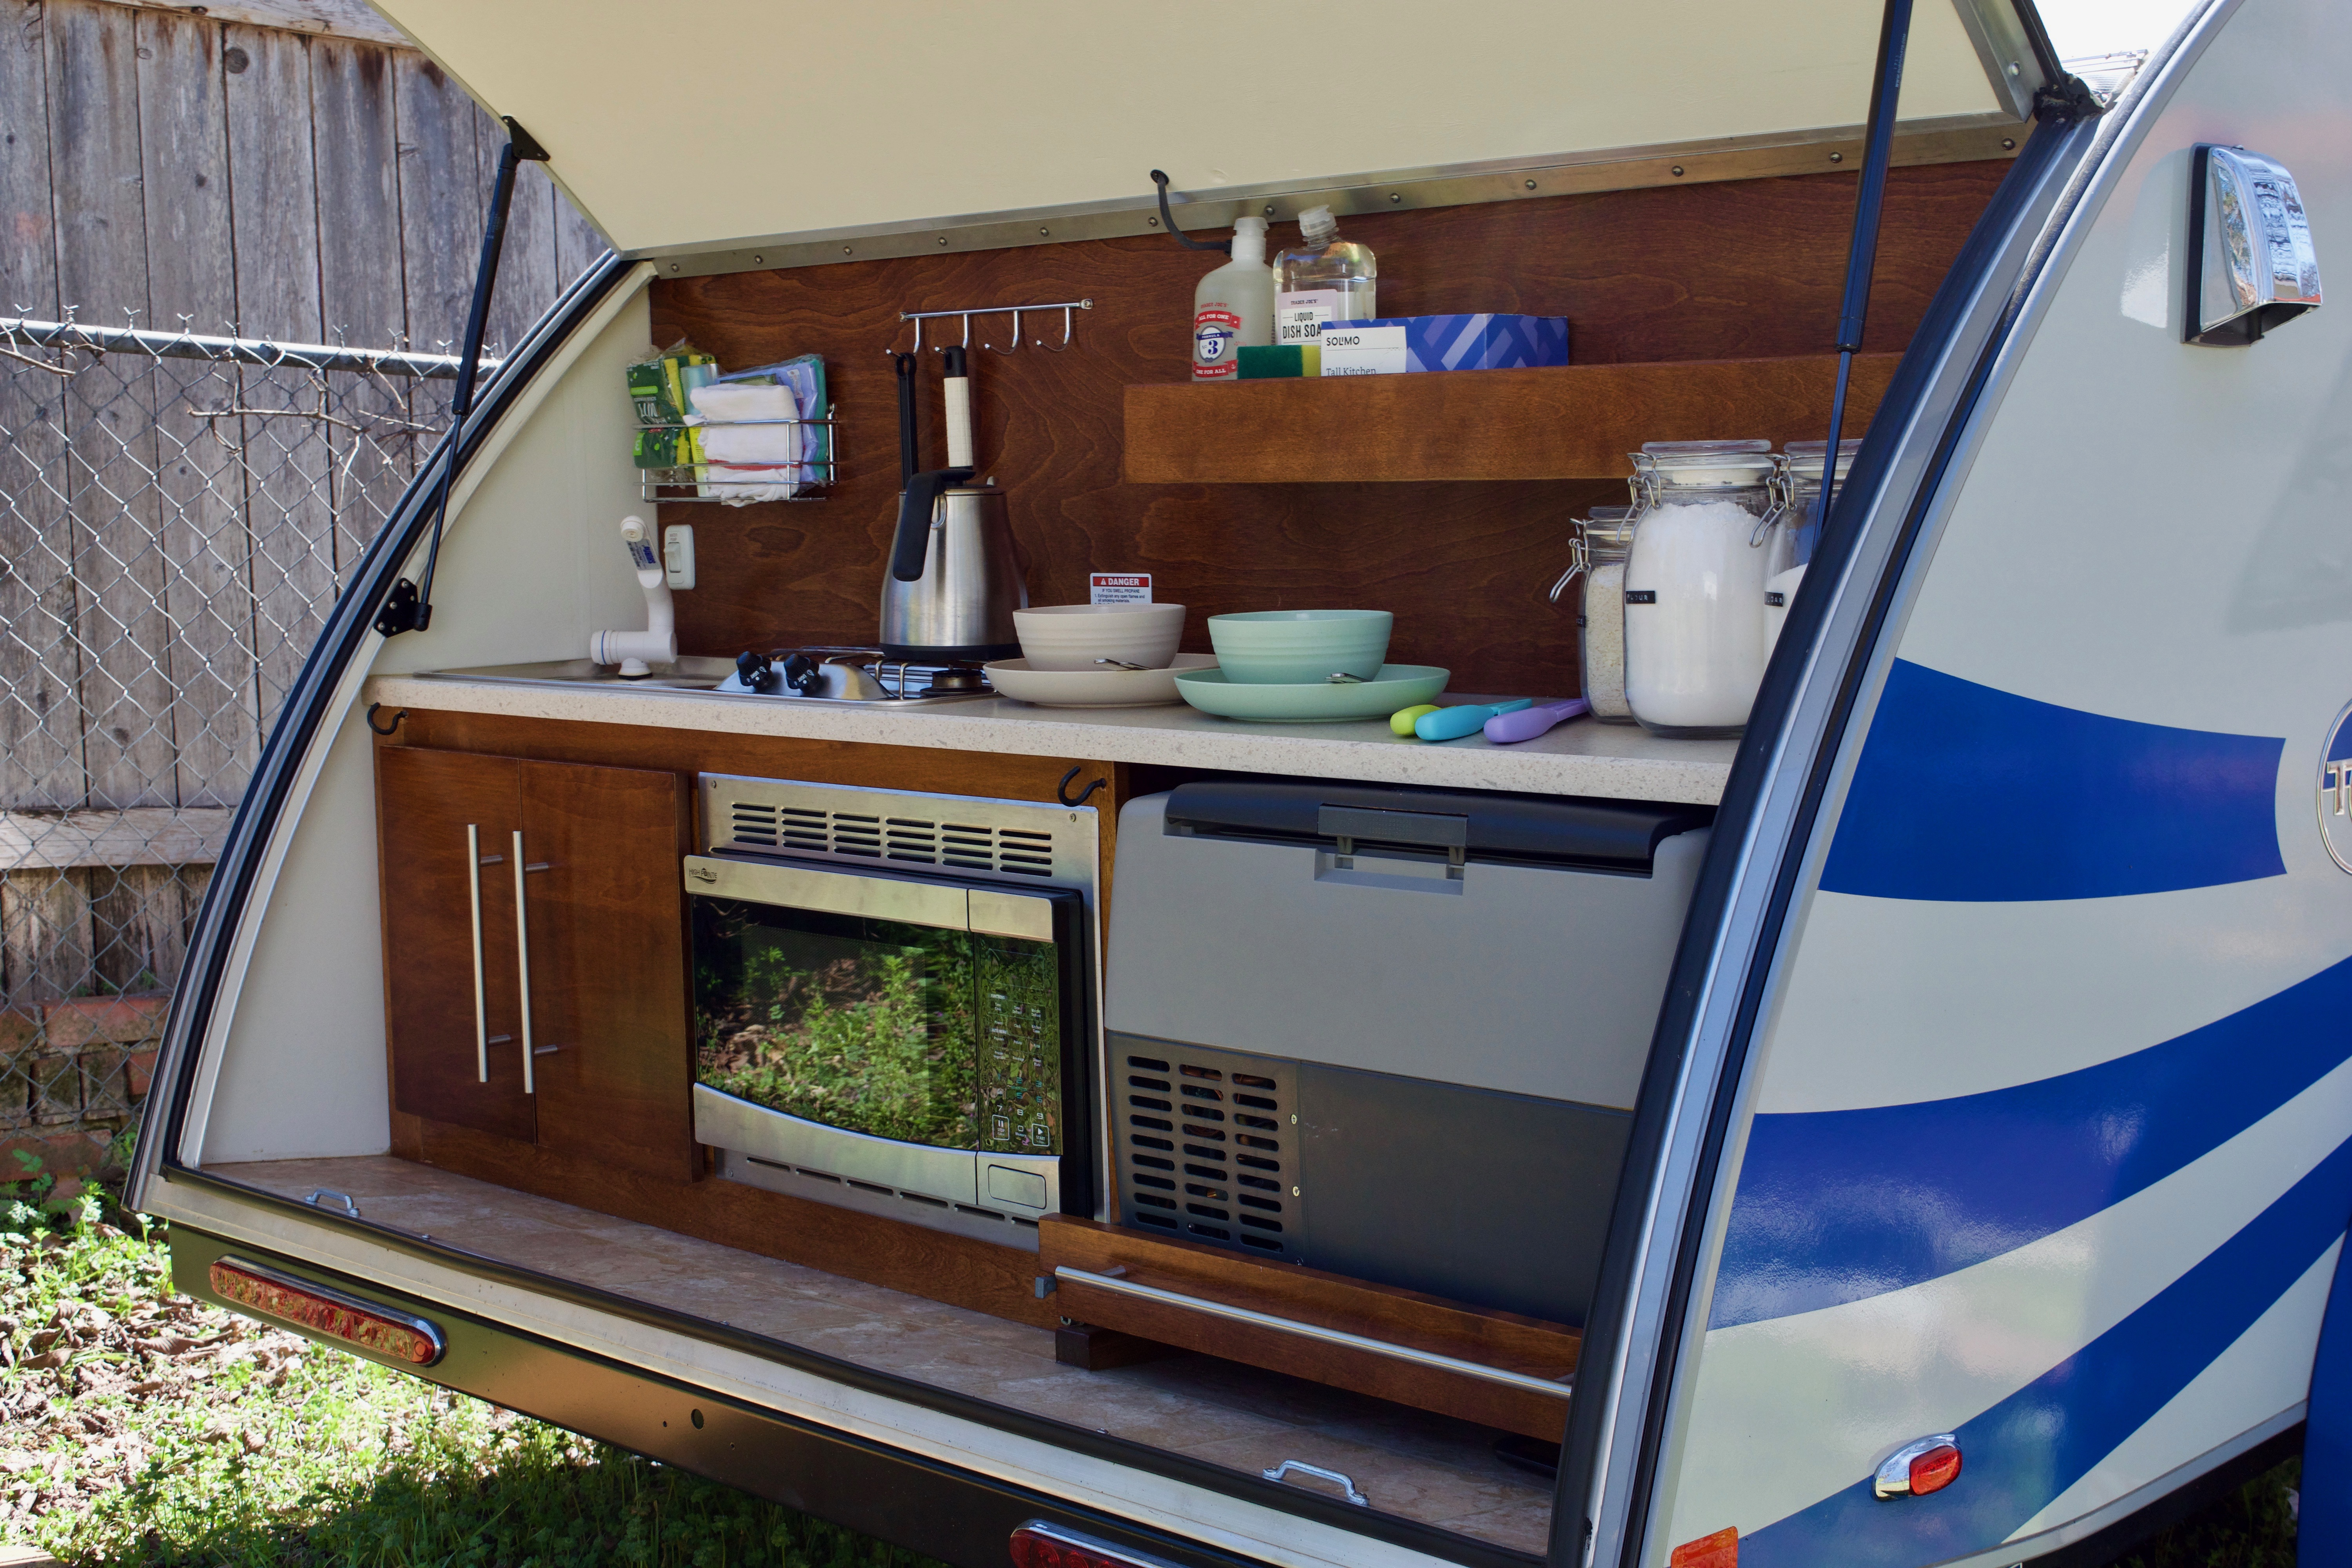 Spacious outdoor kitchen with microwave, fridge, two burner stove, and sink. T@G XL 2018